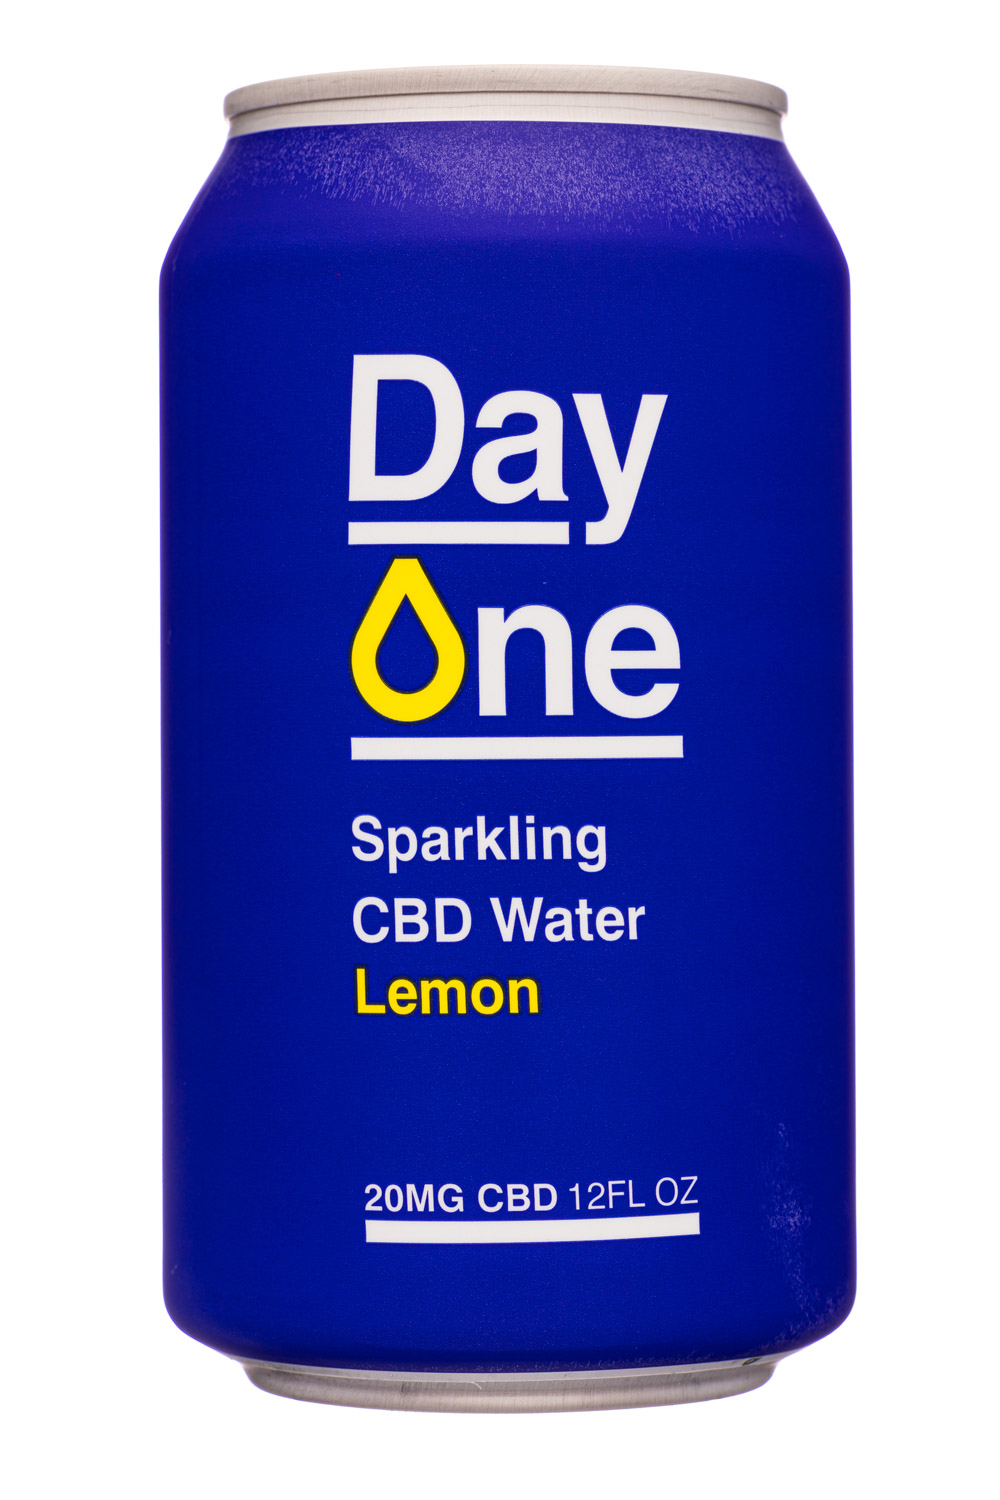 Sparkling CBD Water - Lemon